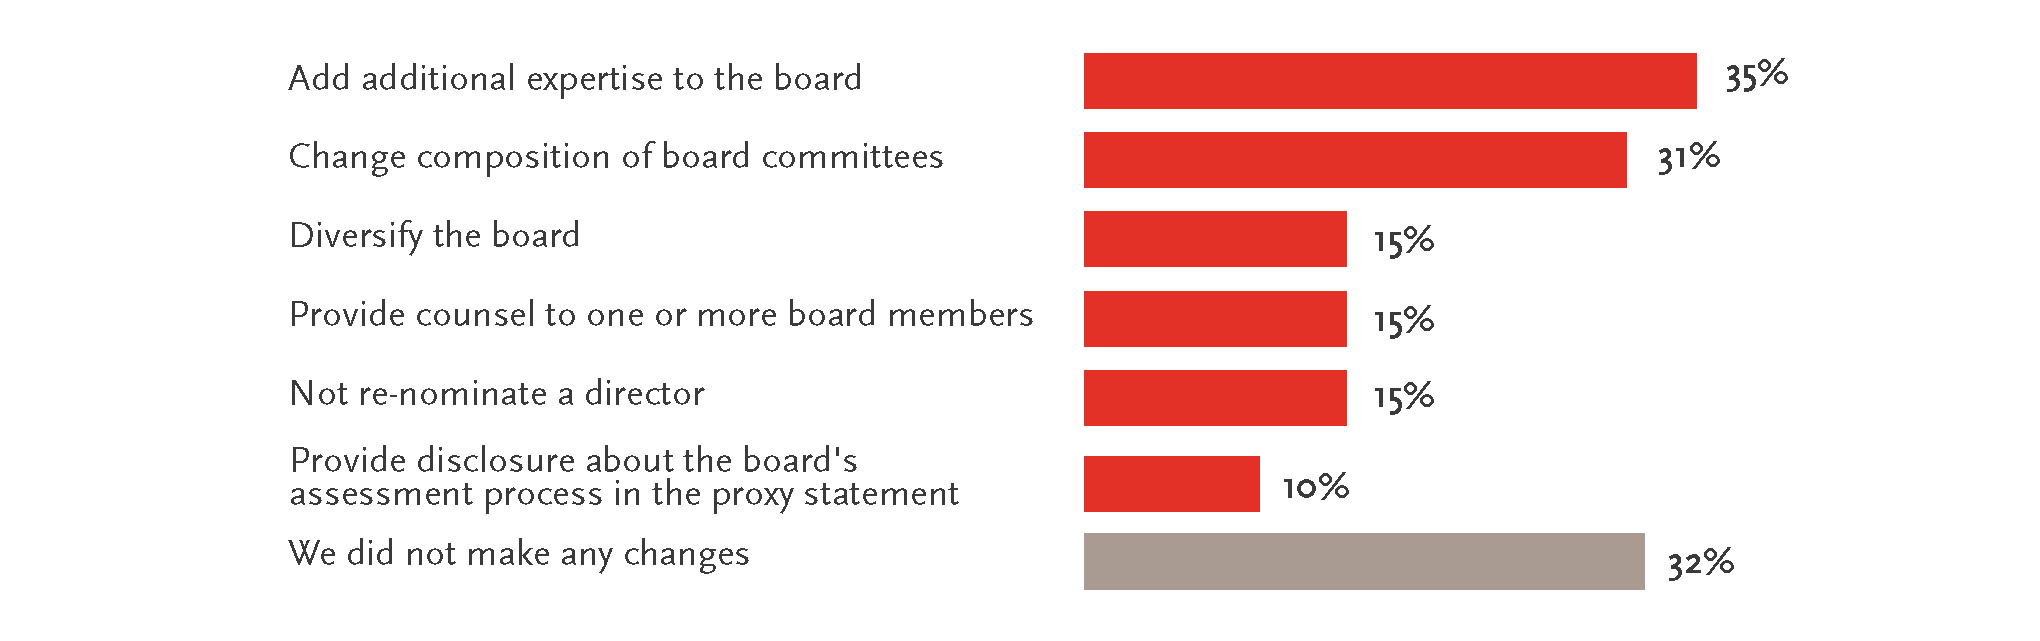 Board action on assessments